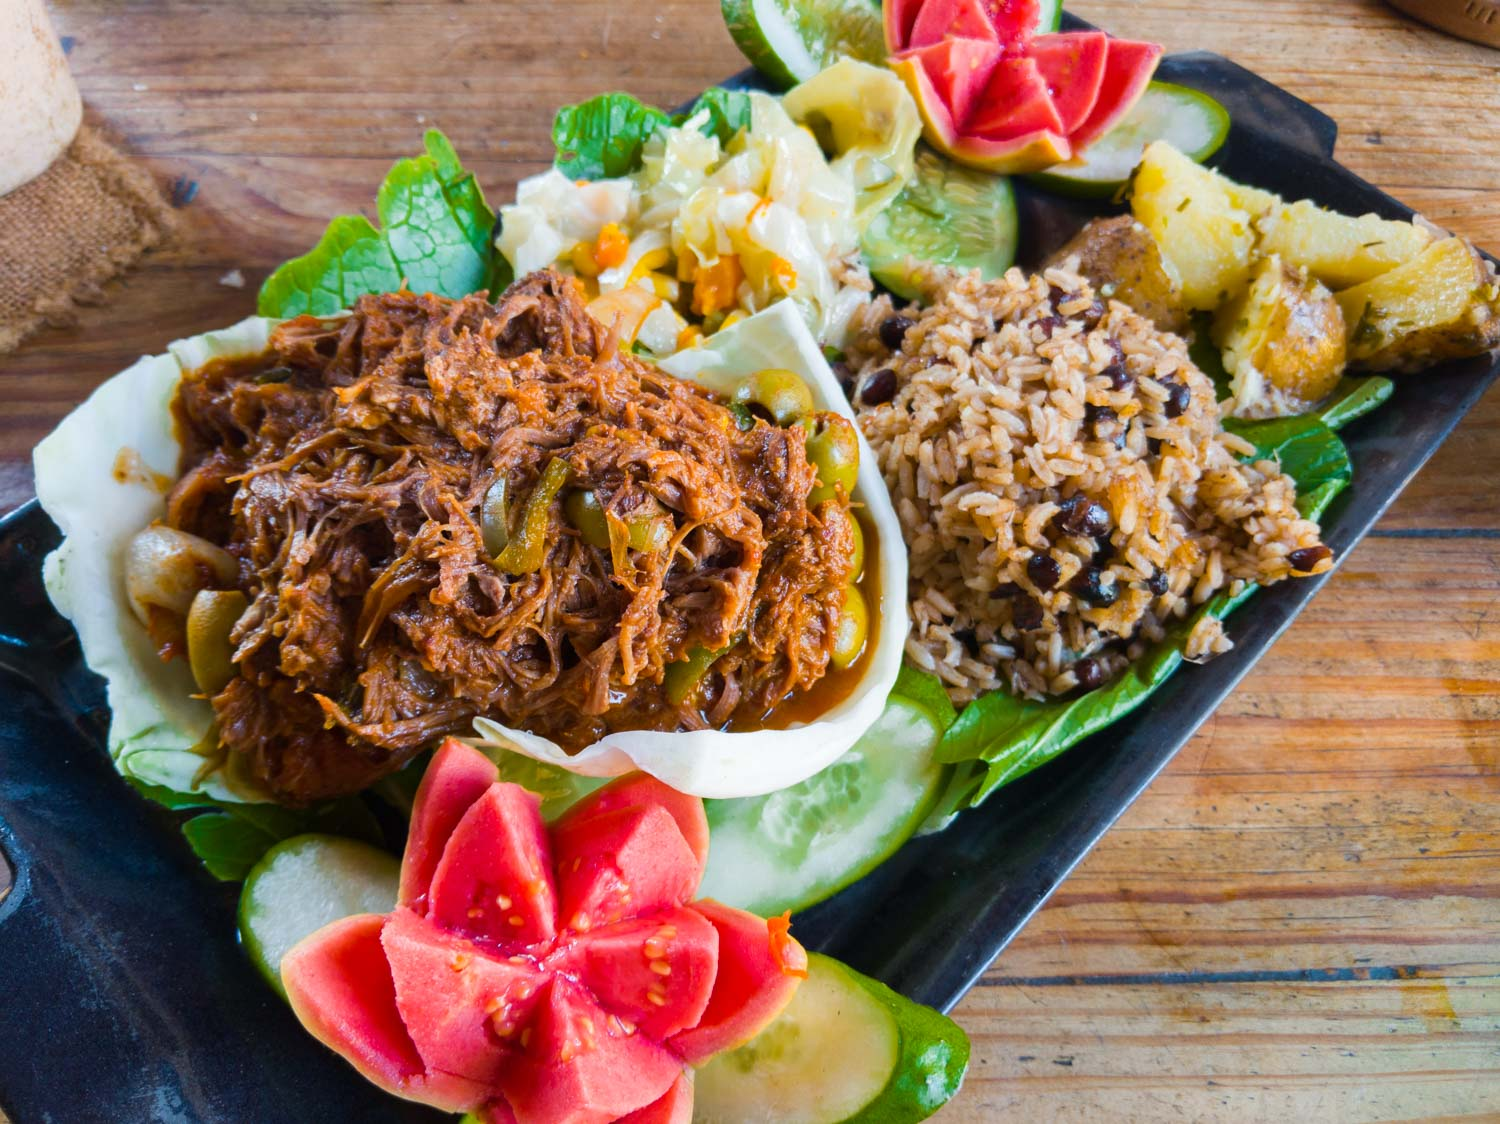 Ropa vieja is the national dish of Cuba you can find it at la Botija in Trinidad Cuba